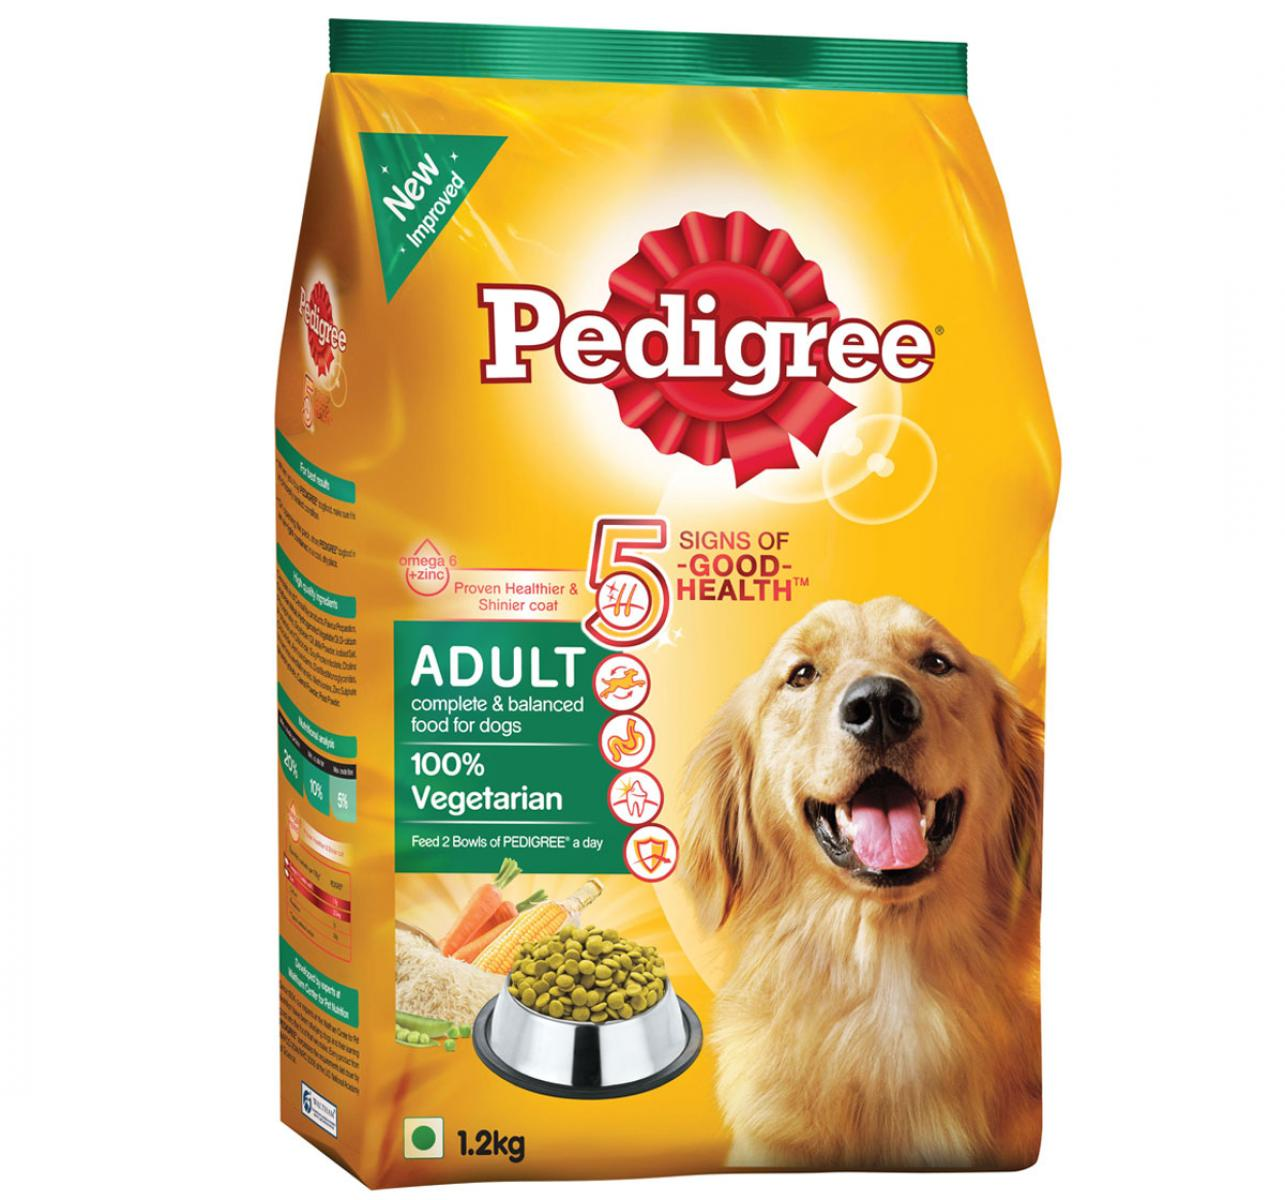 Pedigree Dog Food Adult 100% Vegetarian 1.2 Kg